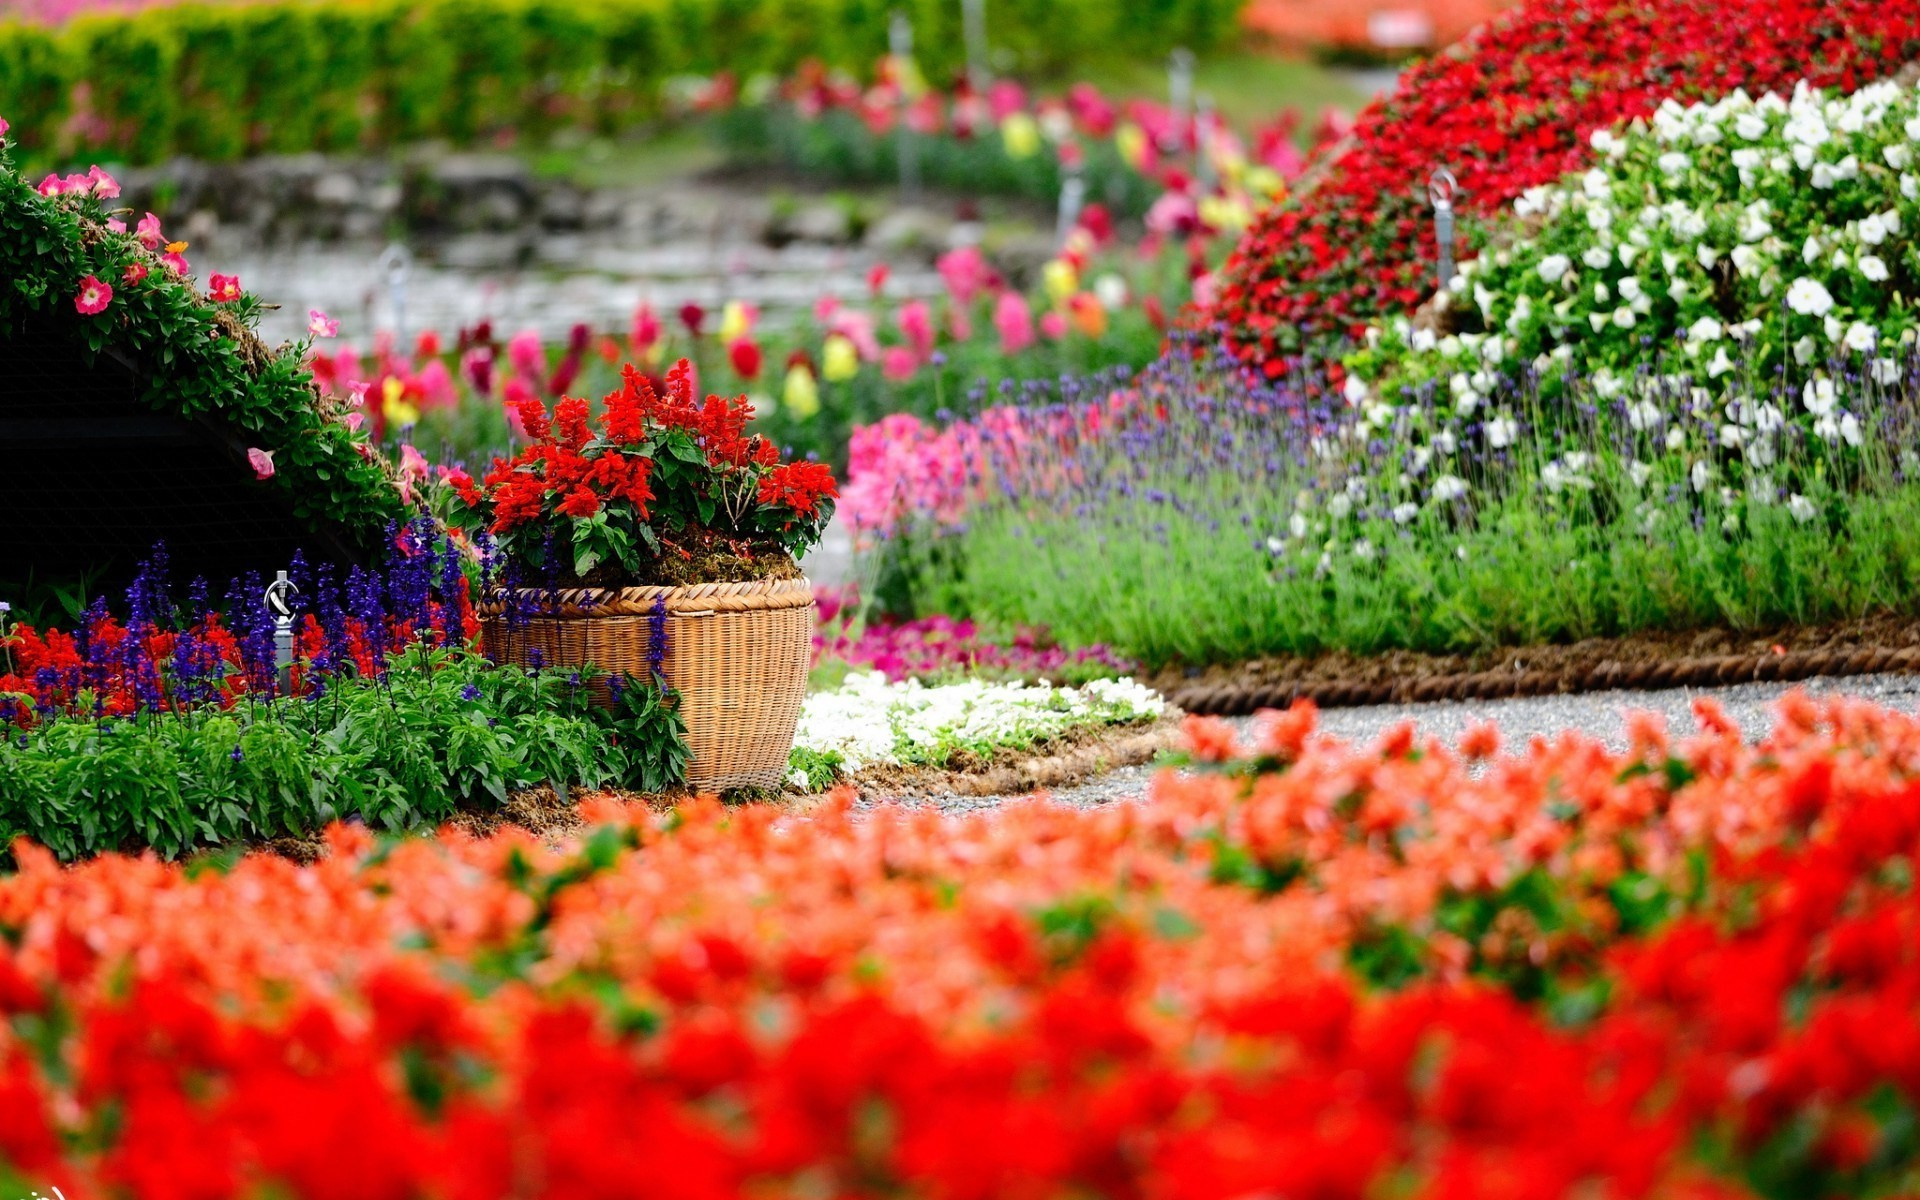 Flower Garden Wallpaper Background flowers, garden, colorful, depth of field, baskets, red flowers